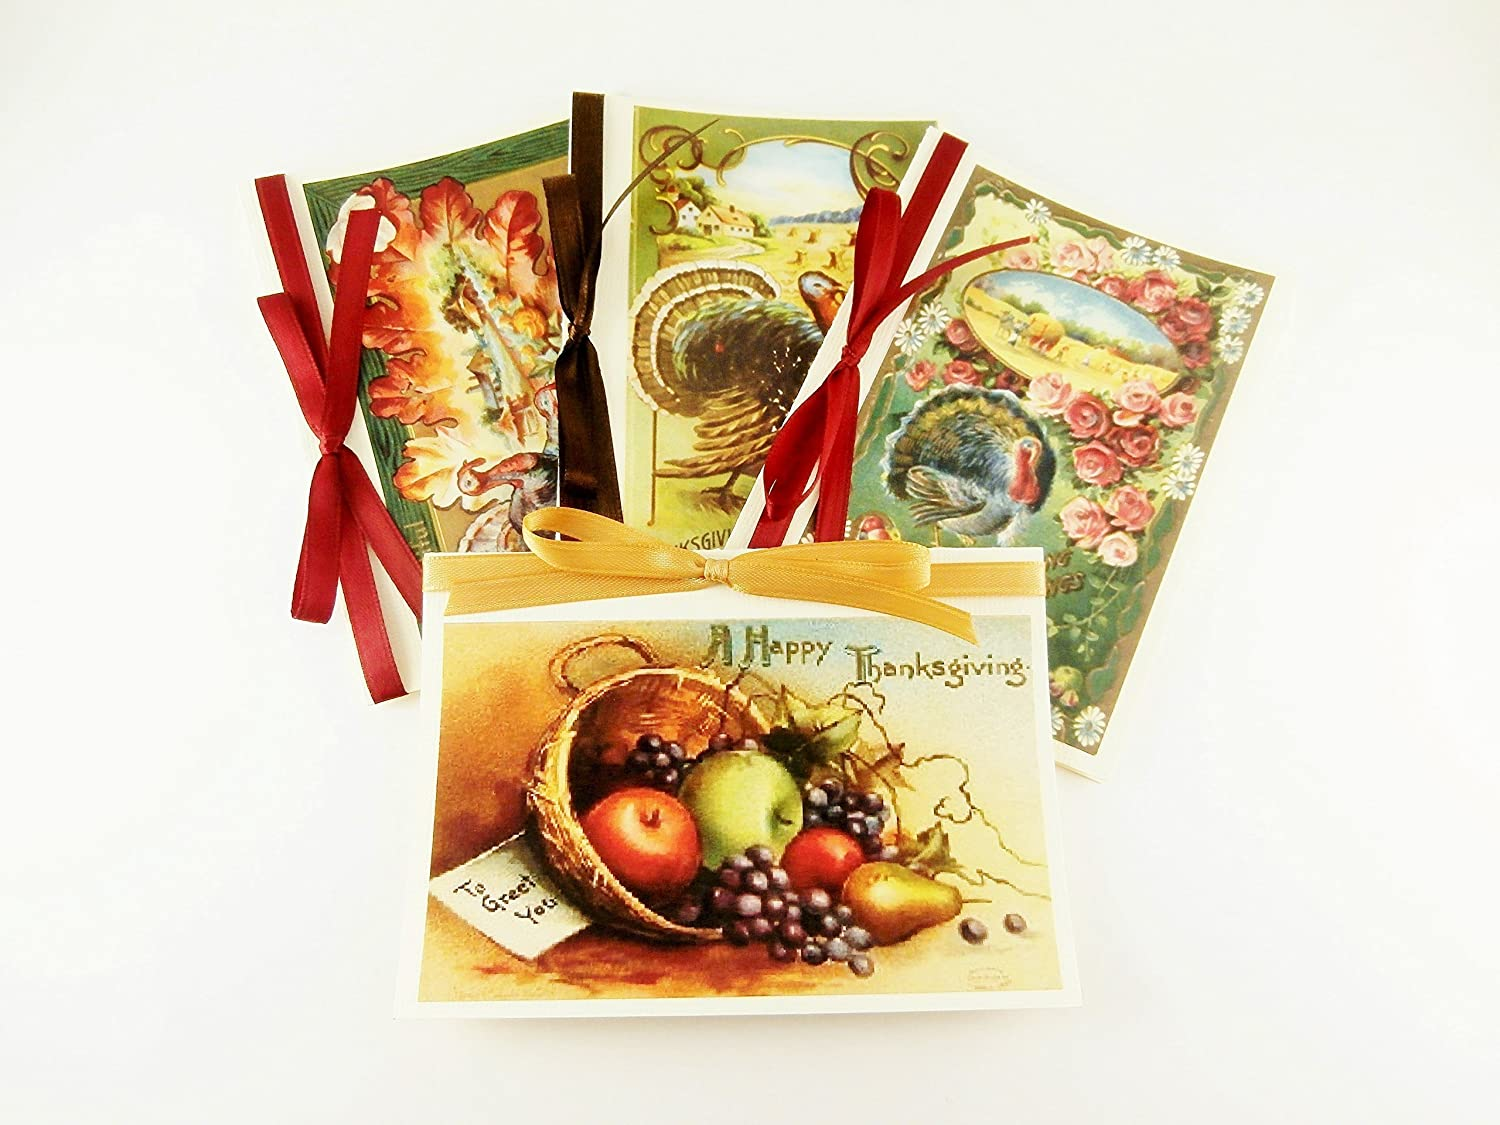 Thanksgiving Greetings - Set of 4 Vintage-Style Cards - A1 Size